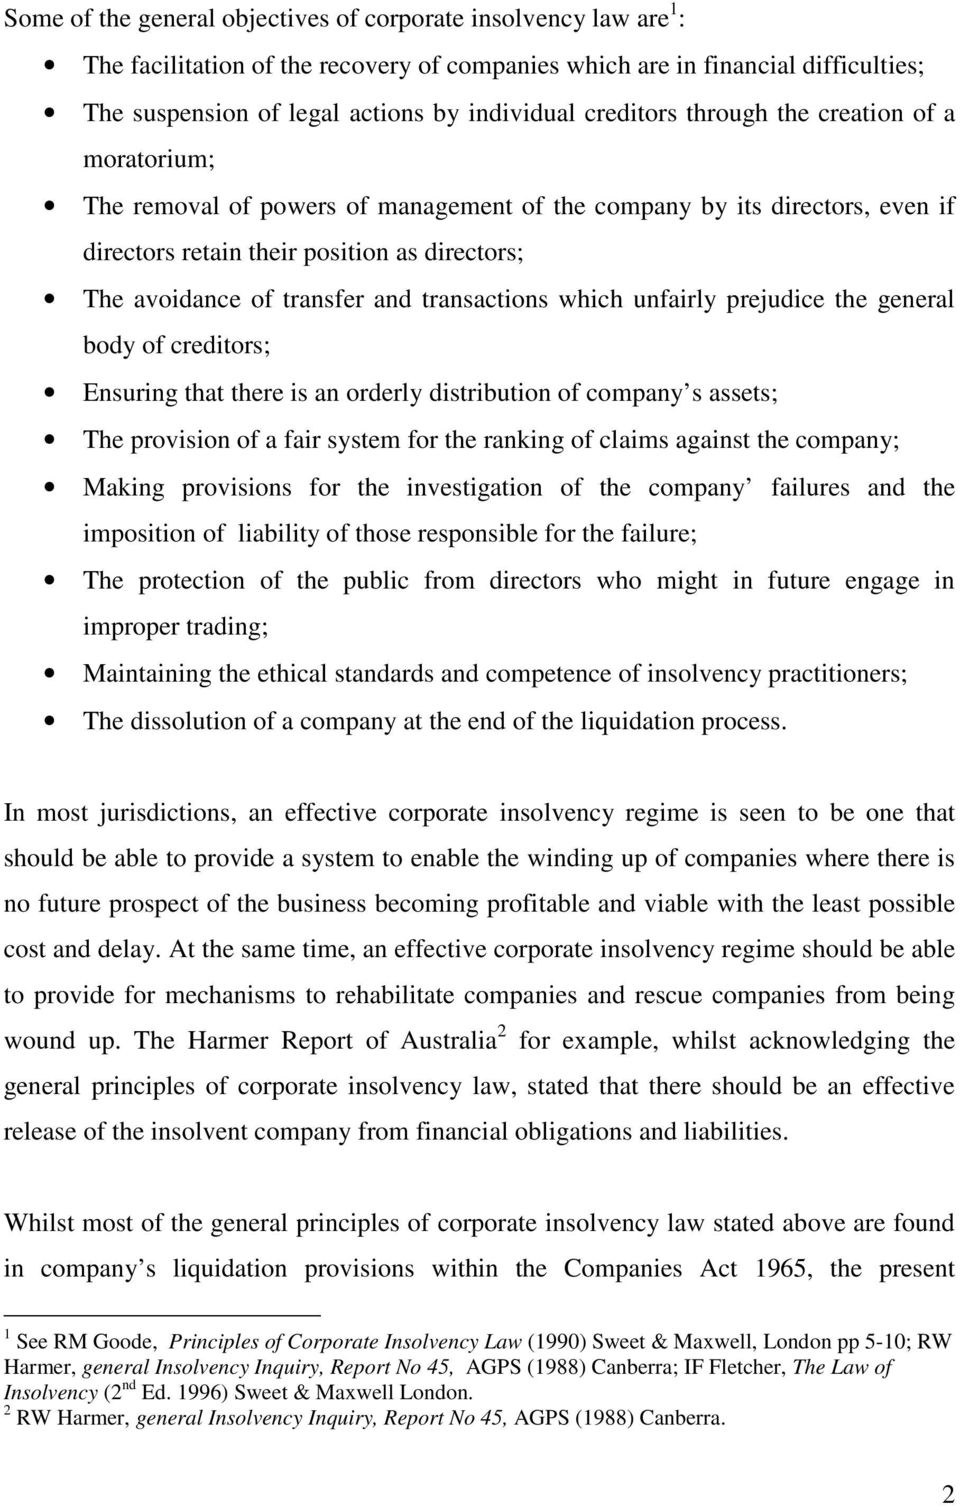 and transactions which unfairly prejudice the general body of creditors; Ensuring that there is an orderly distribution of company s assets; The provision of a fair system for the ranking of claims